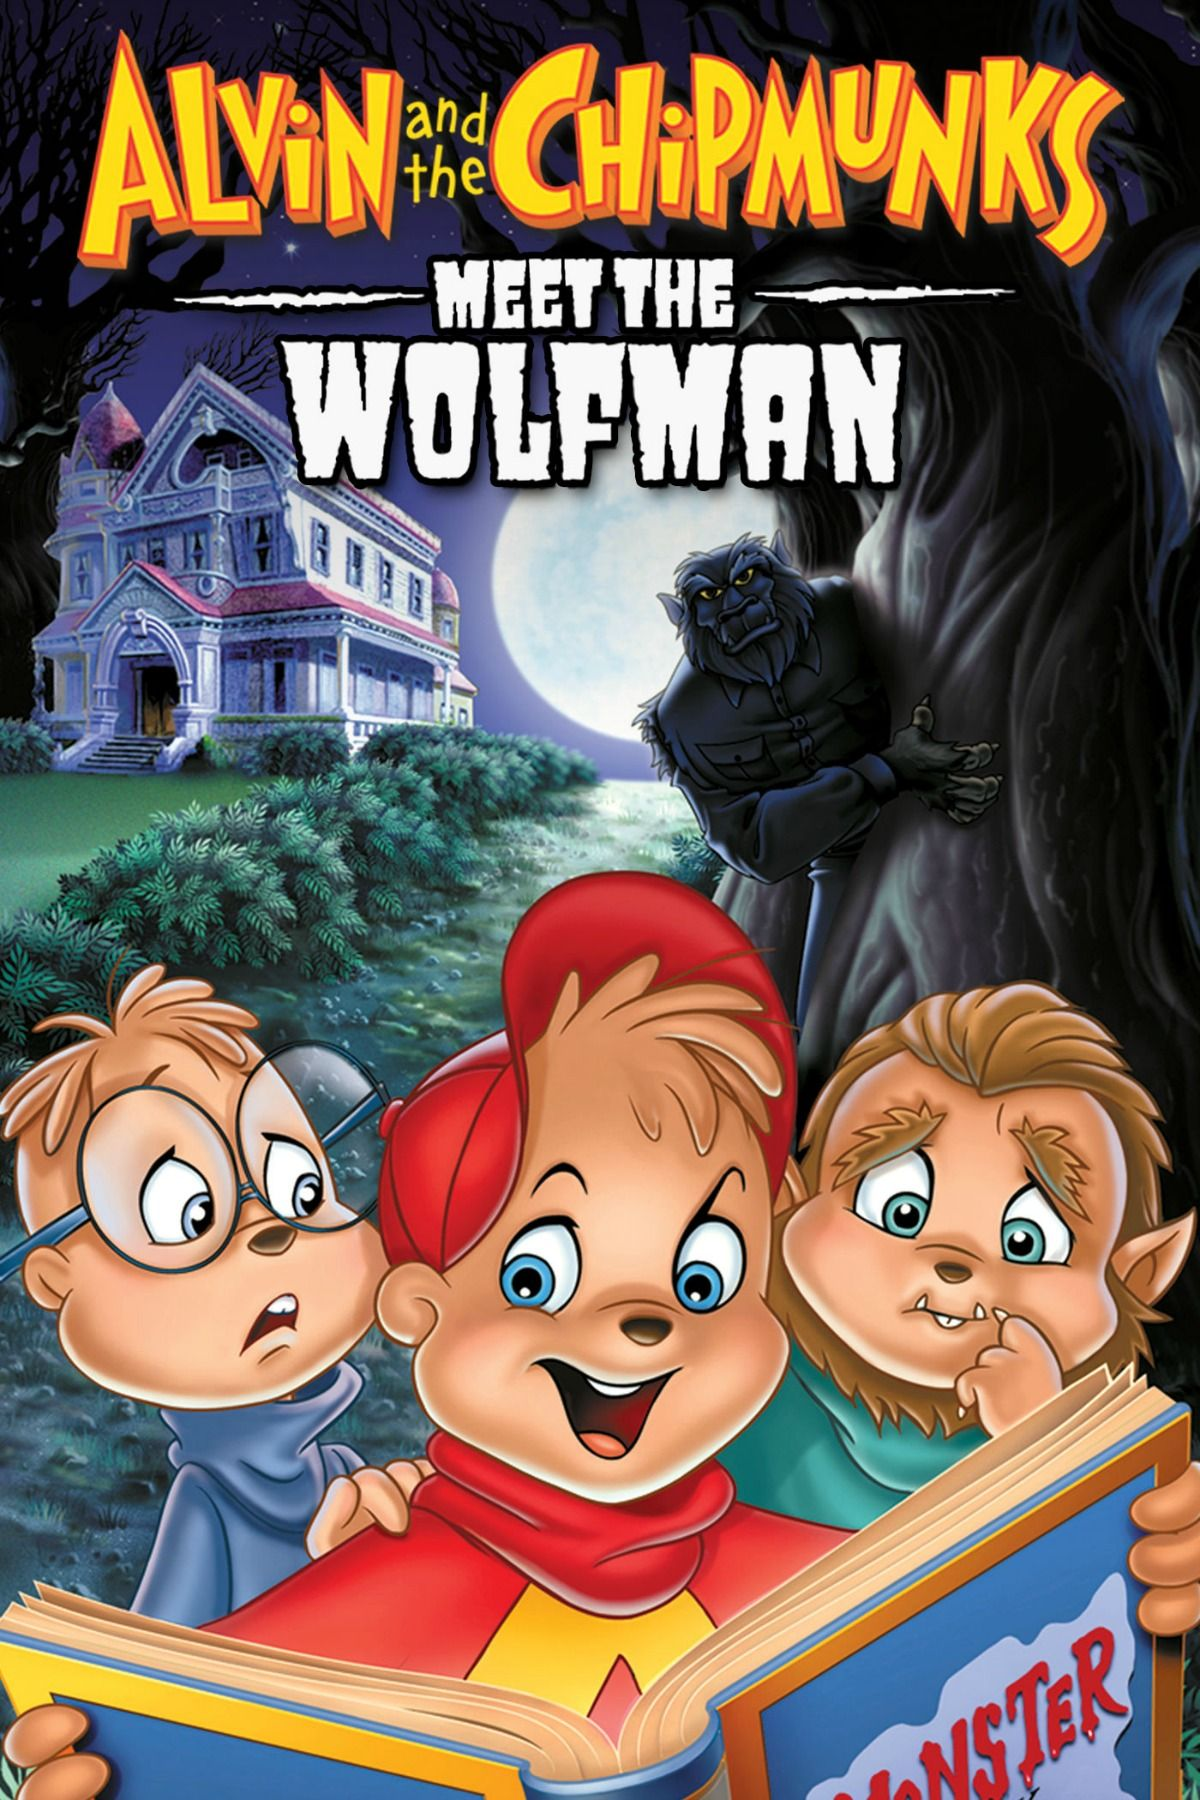 Family Friendly Halloween Movies on Netflix Alvin and